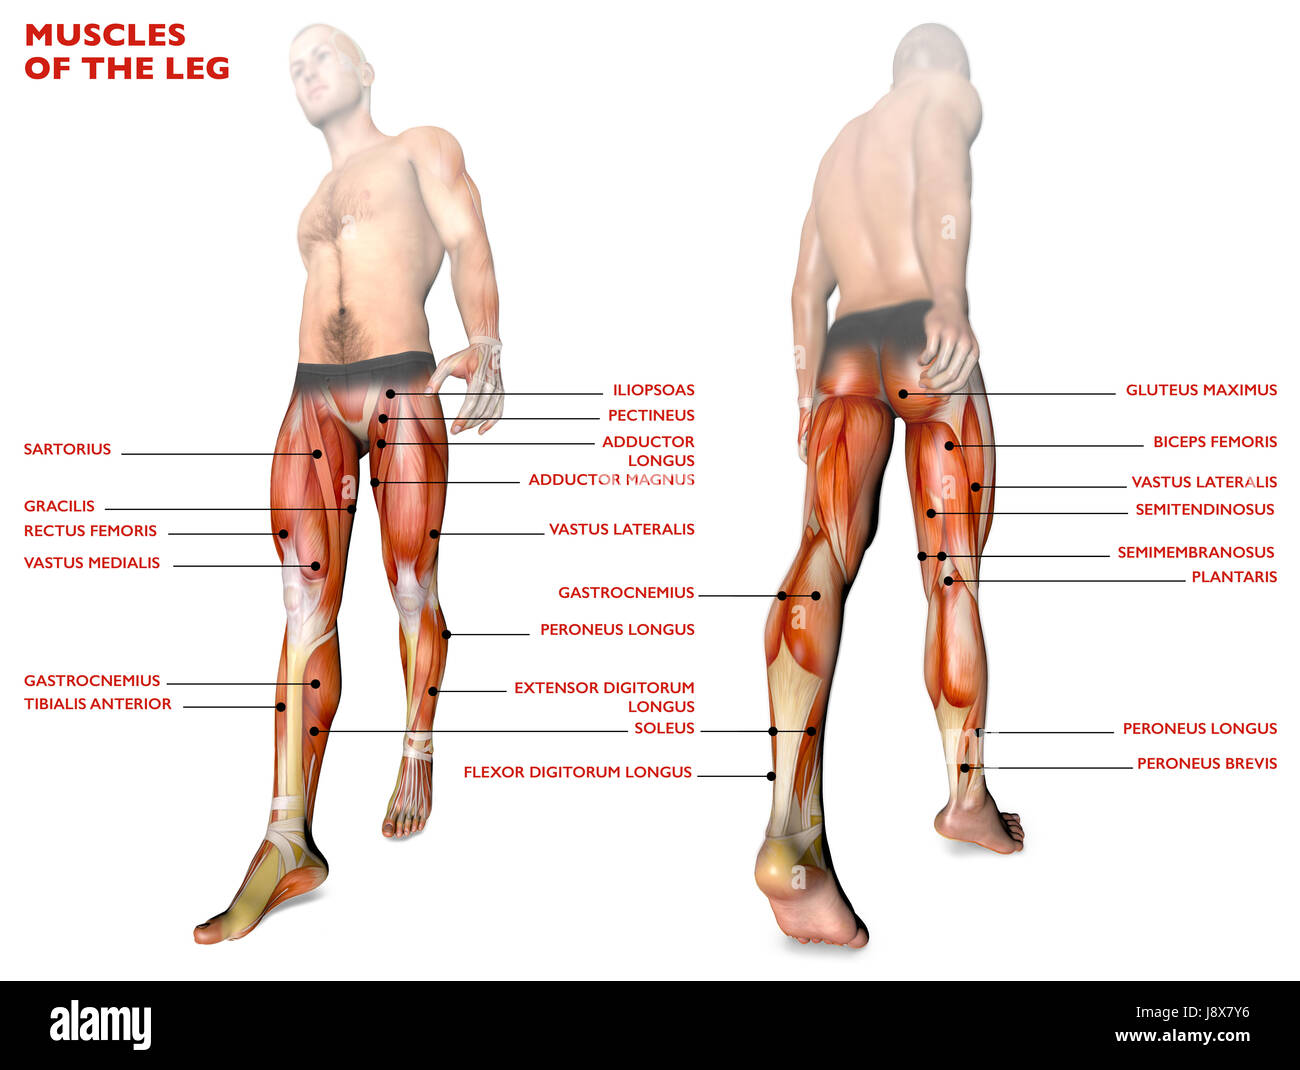 Leg Muscles Human Body Anatomy Muscle System 3d Rendering Stock